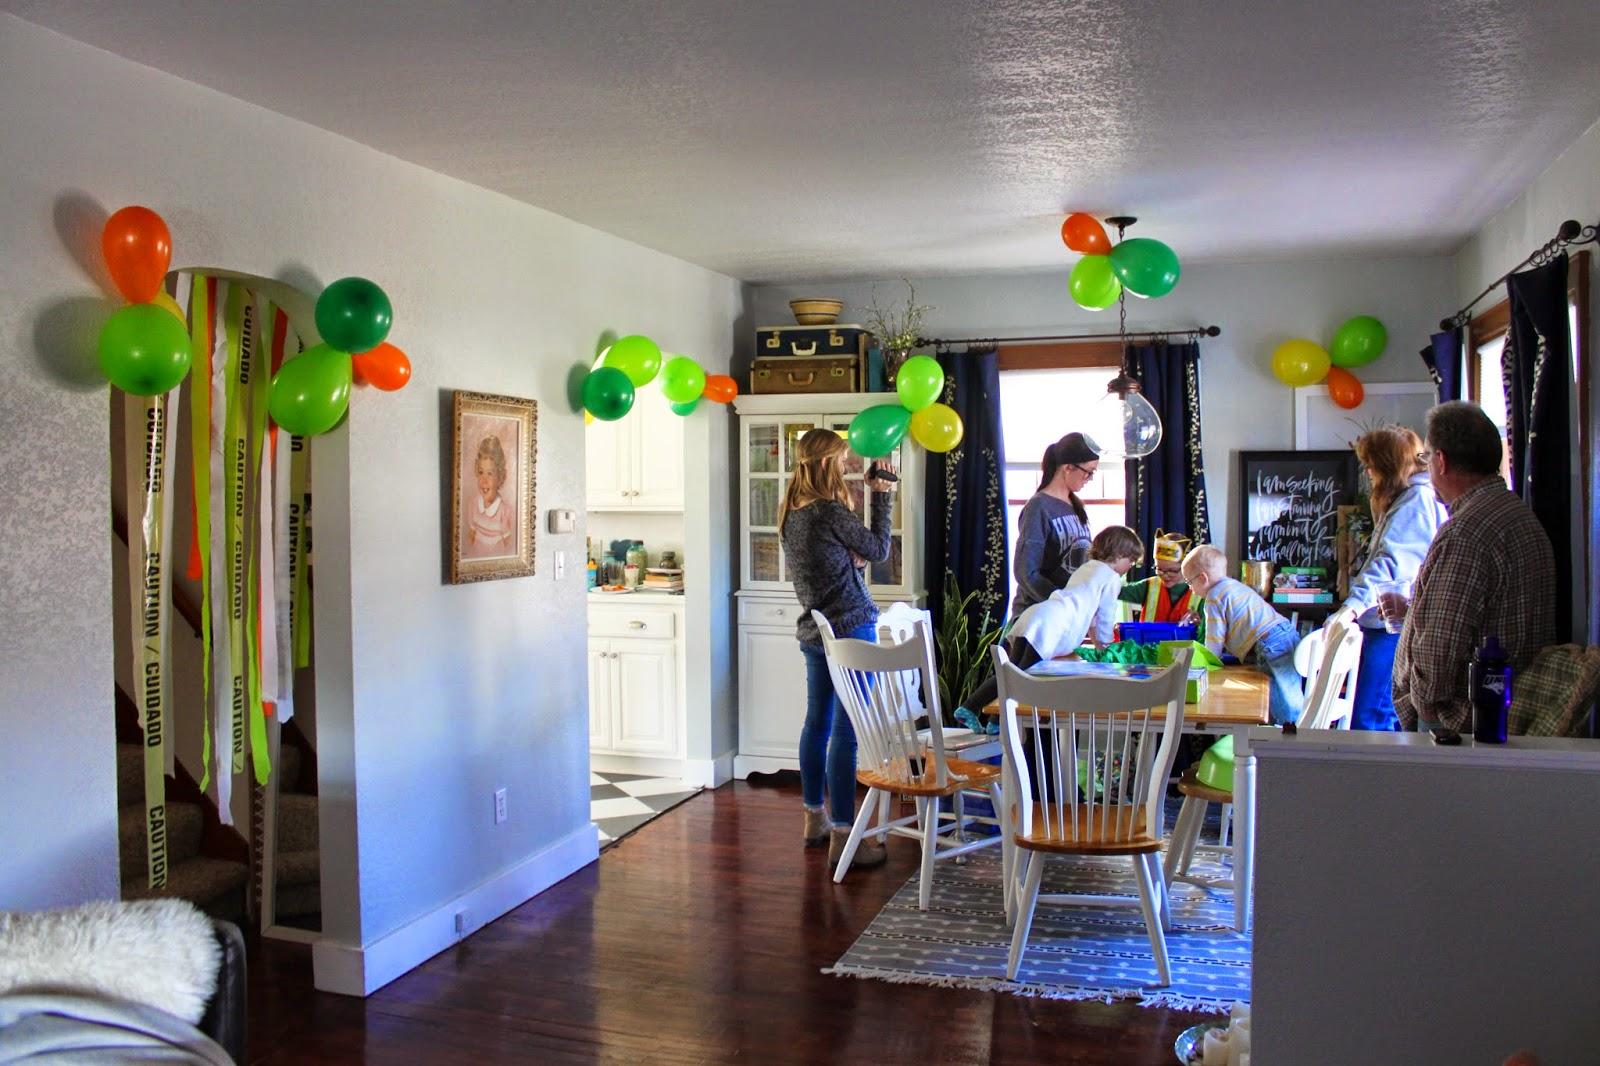 the minivan voorsts : birthday party like it's 1999